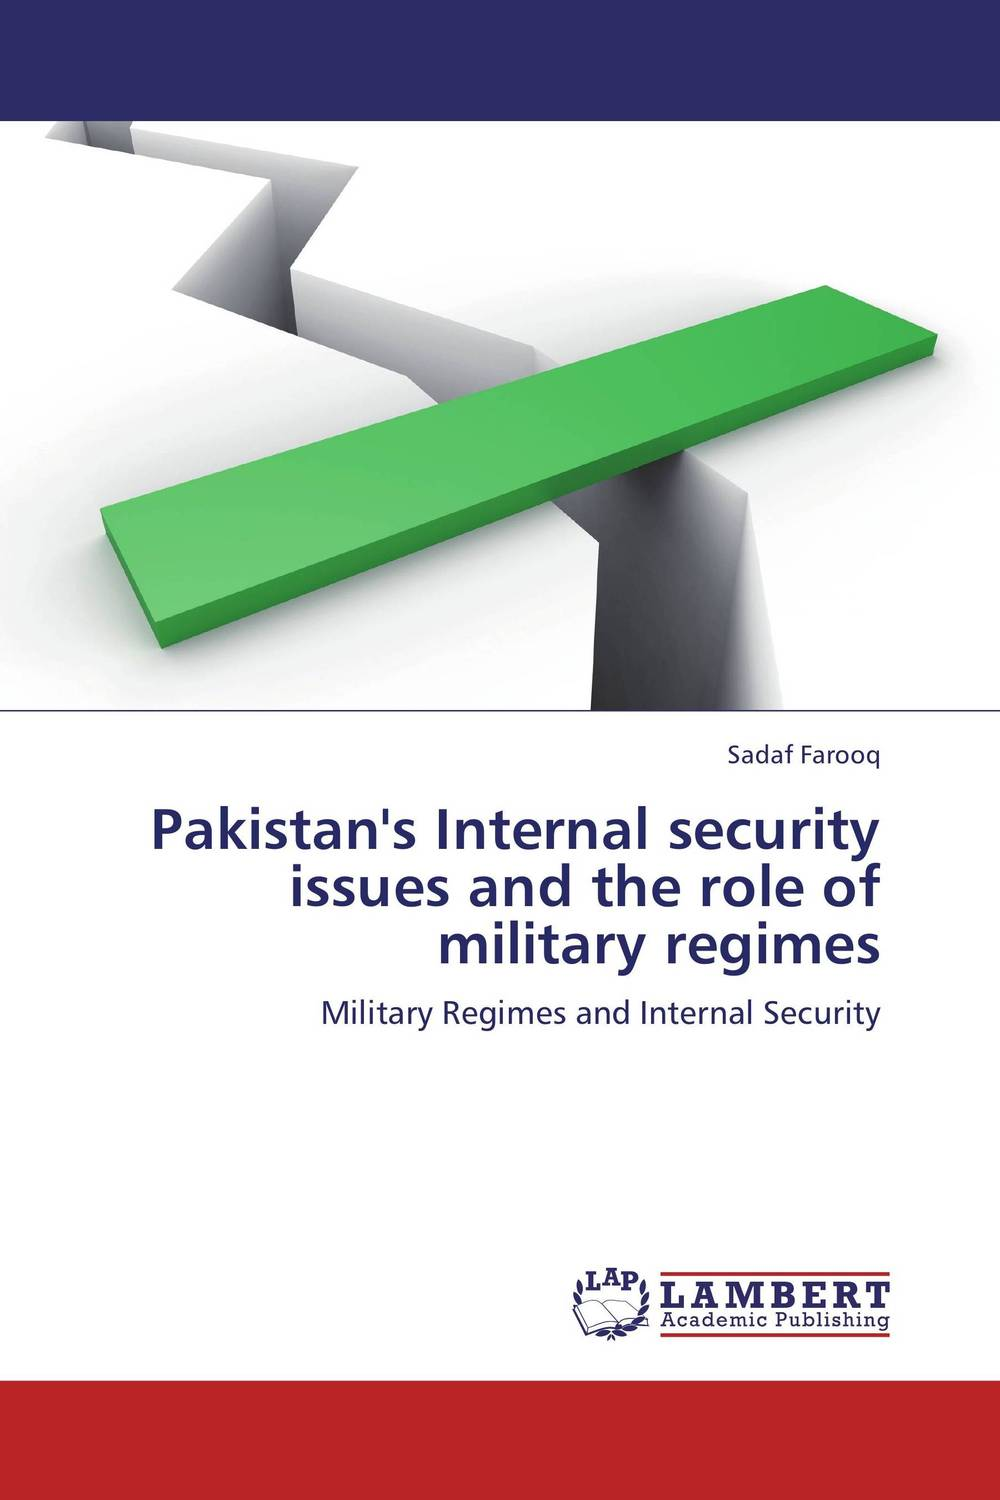 Pakistan's Internal security issues and the role of military regimes сысоев п сысоева л issues in us culture and society амер культура и общество